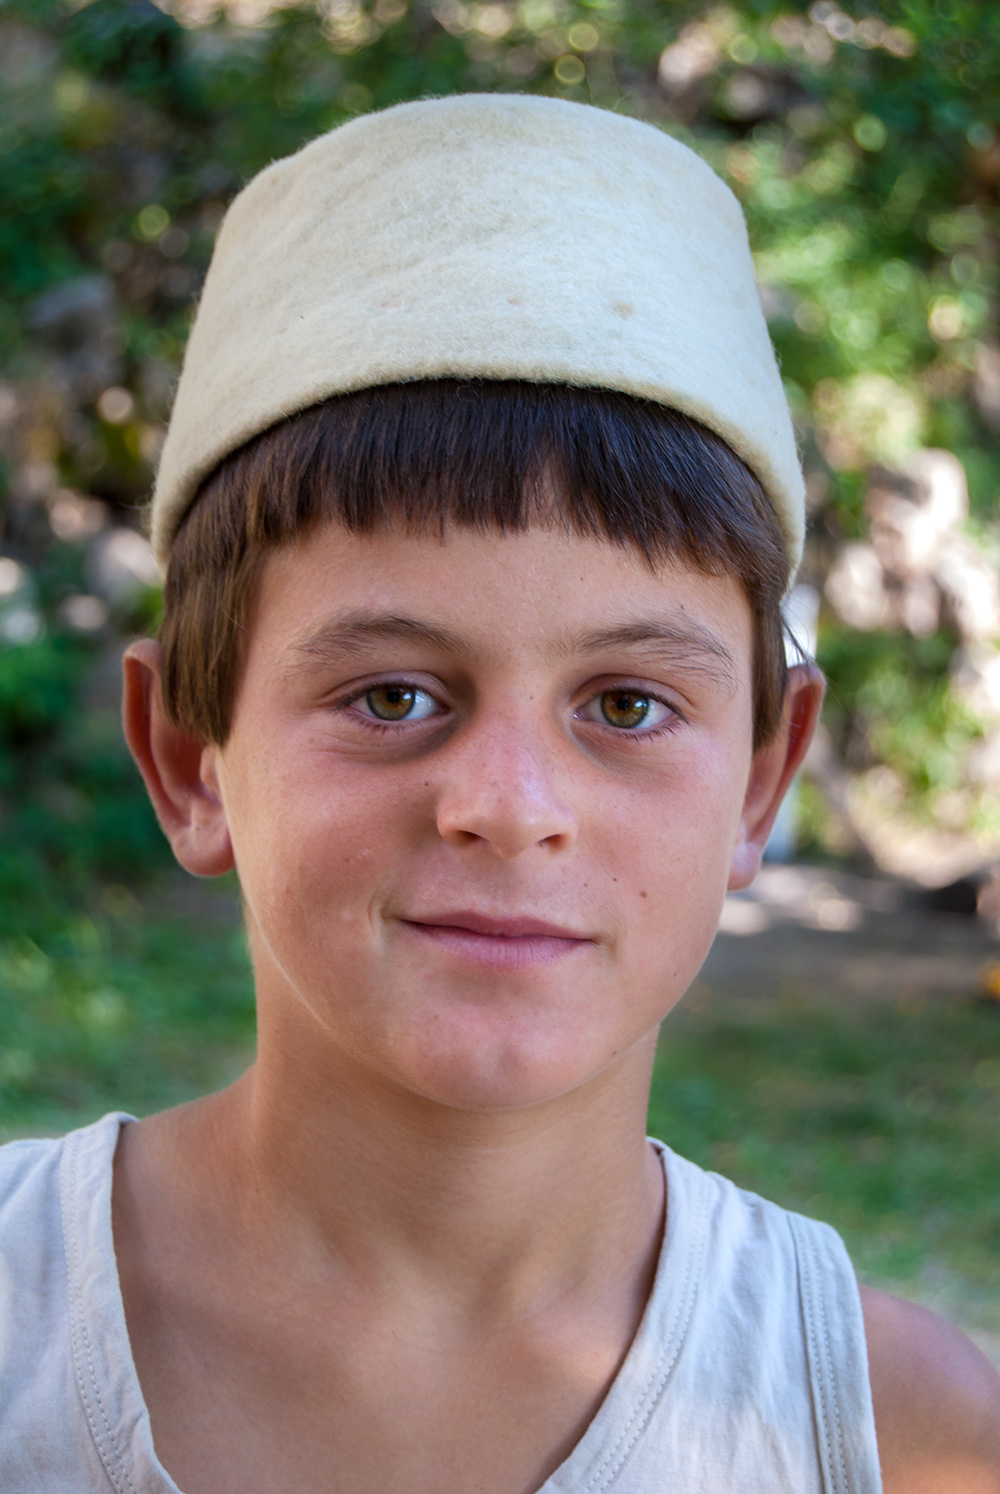 Portrait of a Boy in traditional costume, Orosh Mirditë, © alketa misja photography 2008